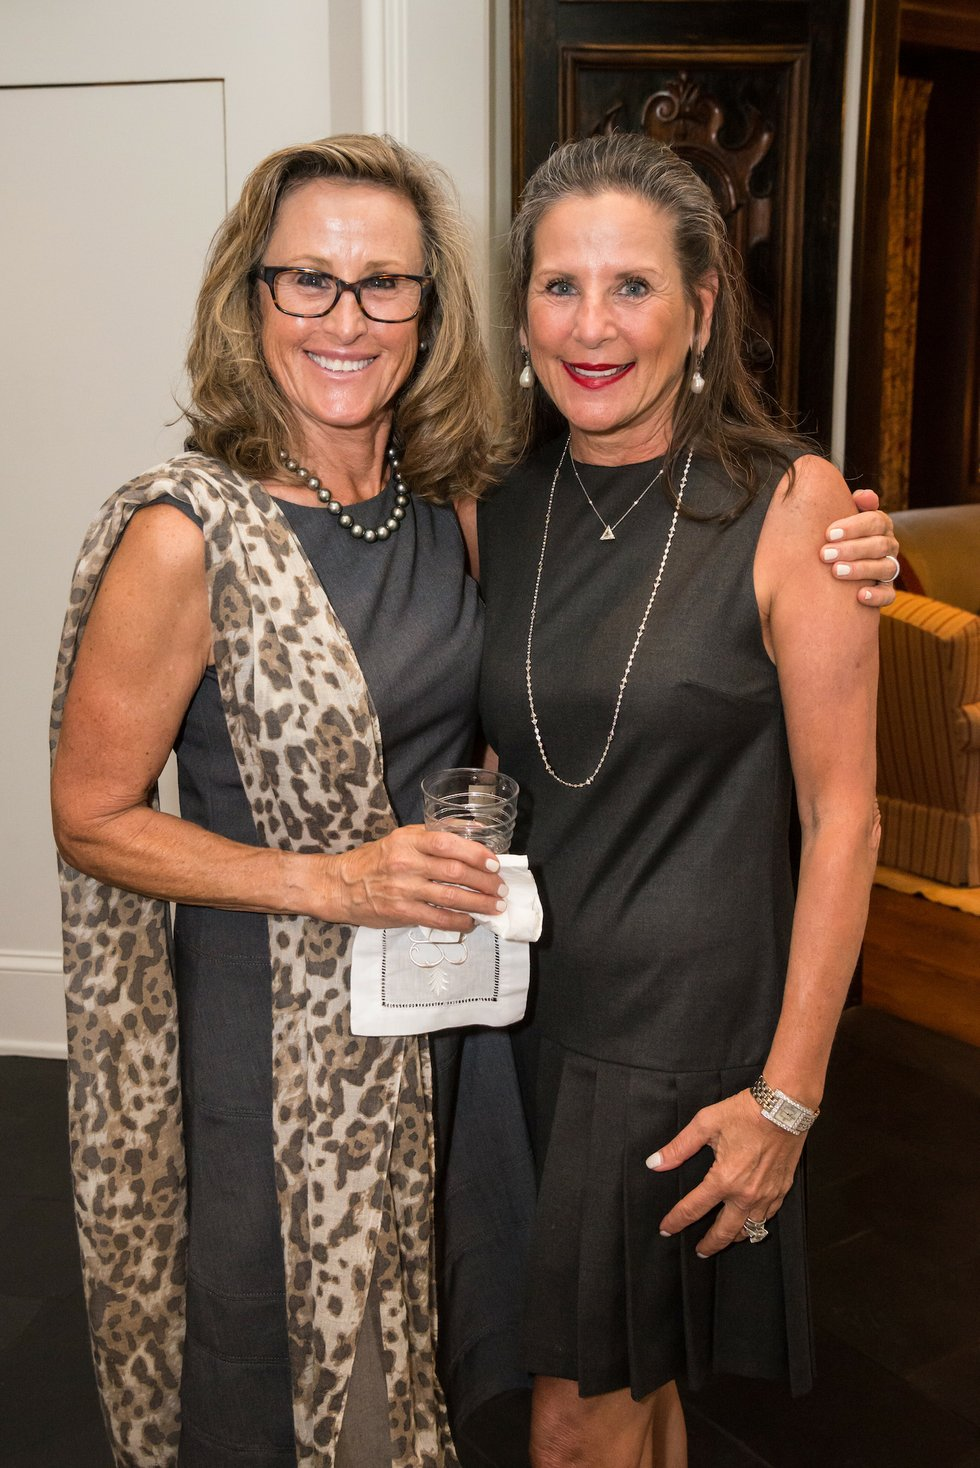 Jacqueline Hutton and Julie Boehm.jpg